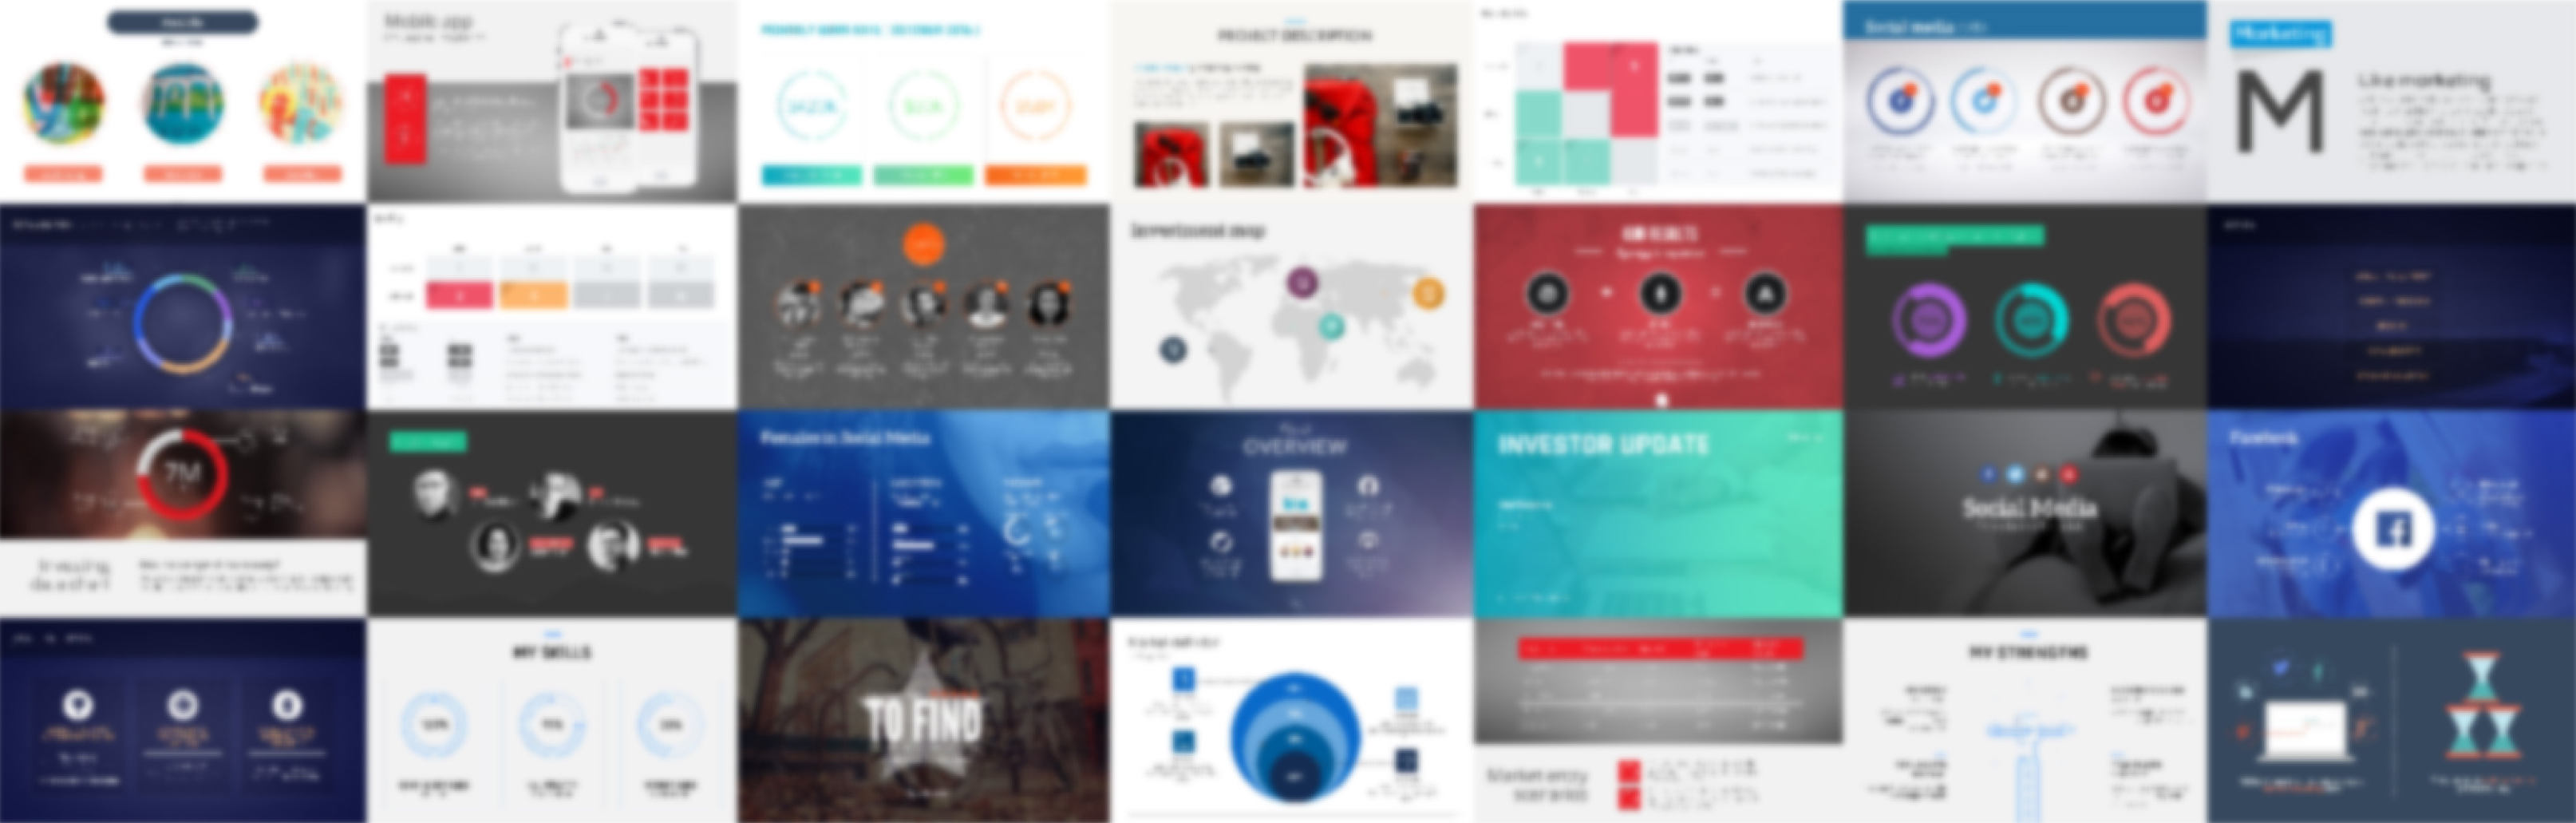 17 best powerpoint templates 2018 updated improve presentation toneelgroepblik Gallery